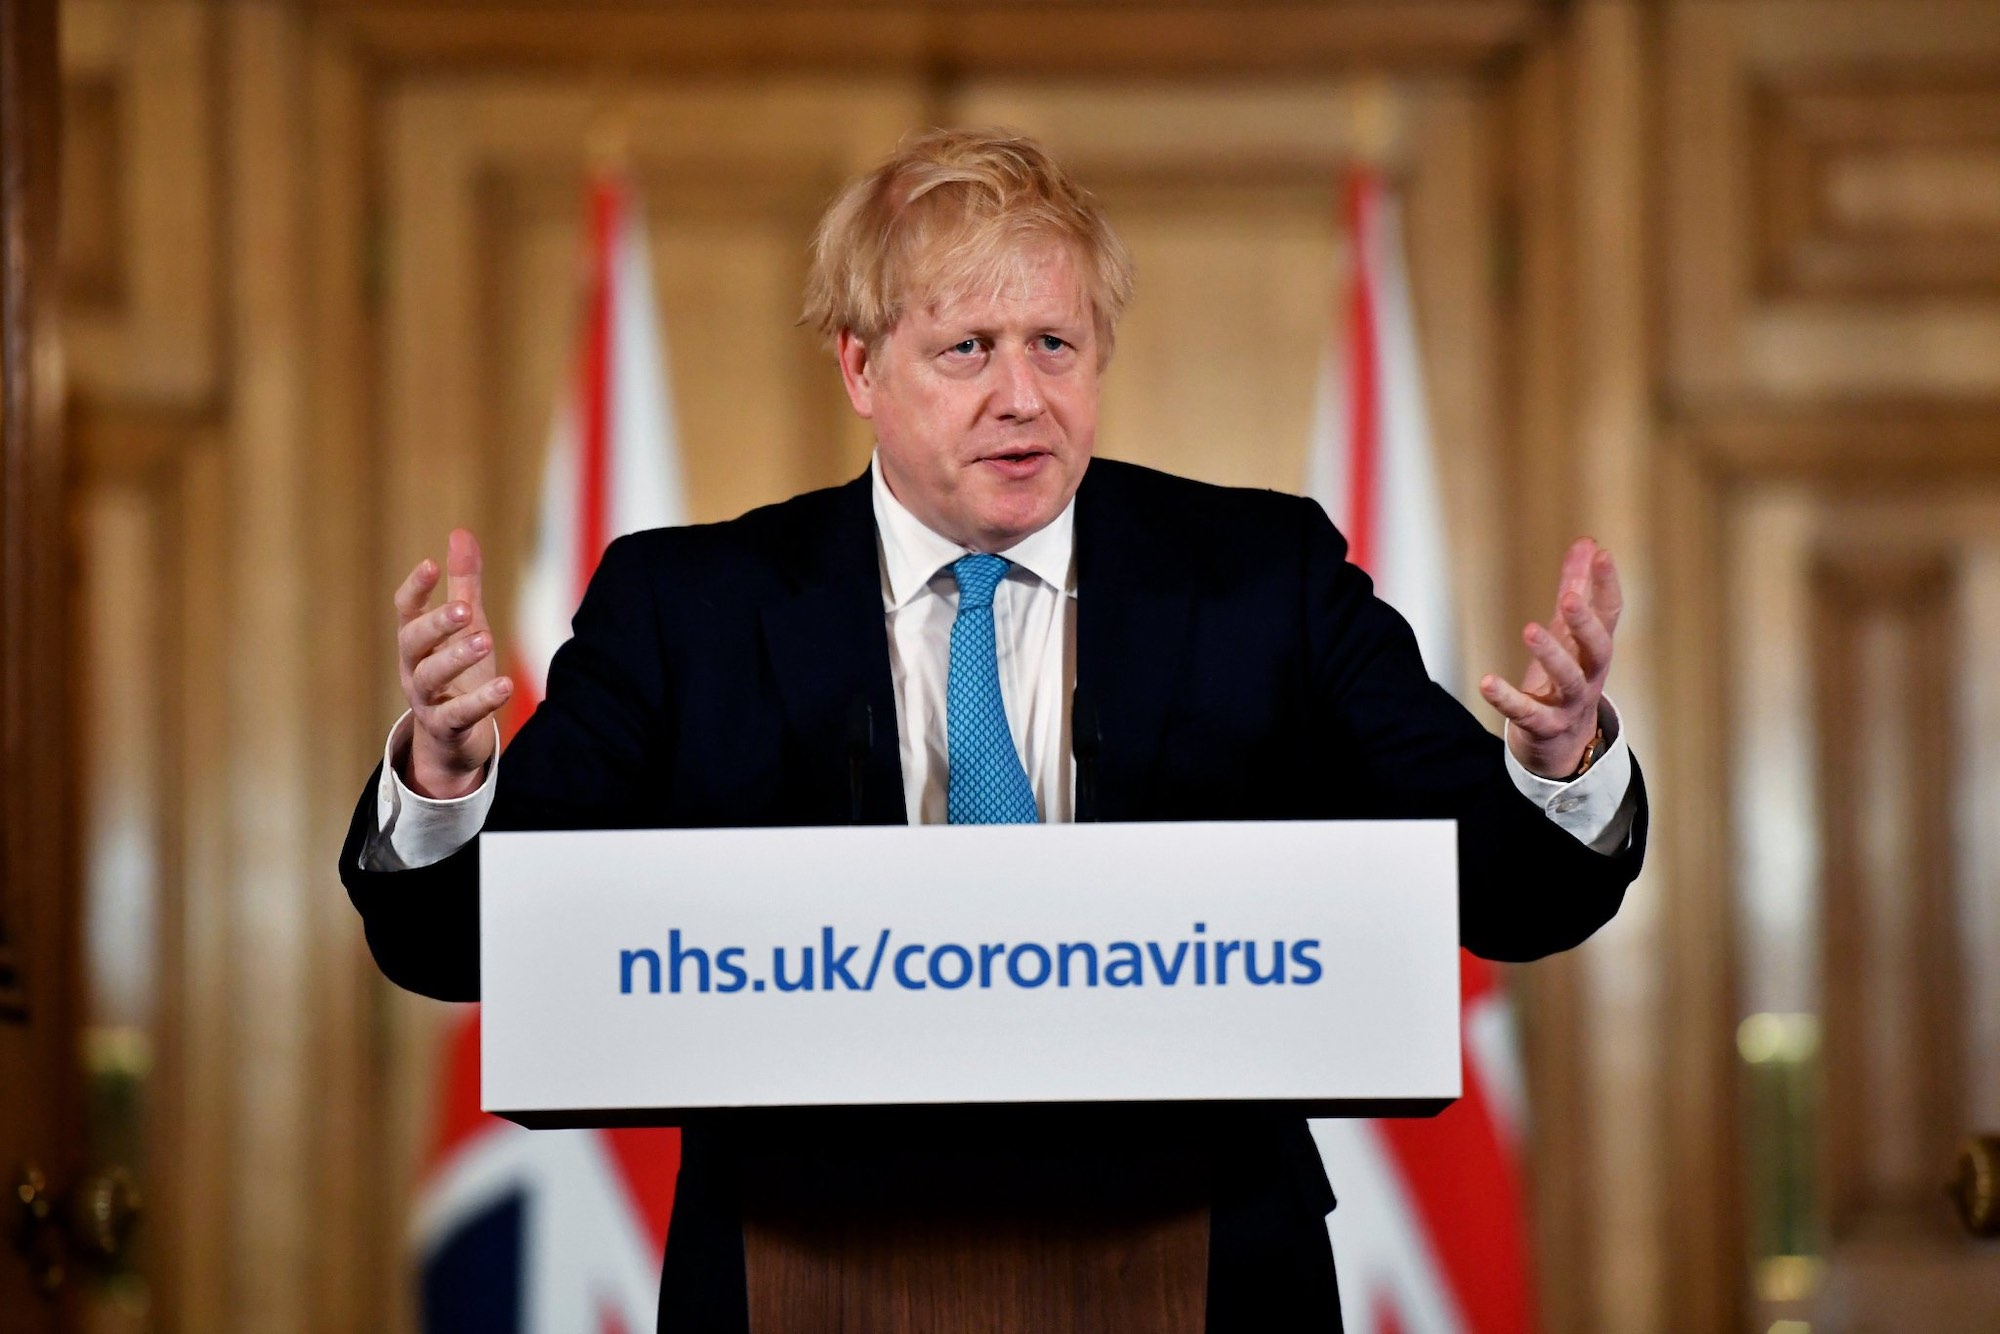 Prime Minister Boris Jonson Condition Improves